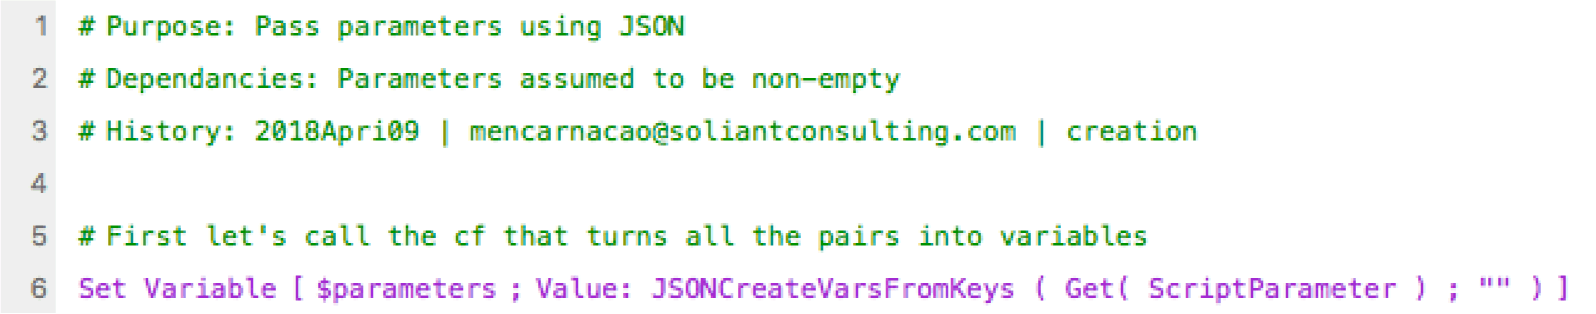 Use a custom function to pass parameter using JSON